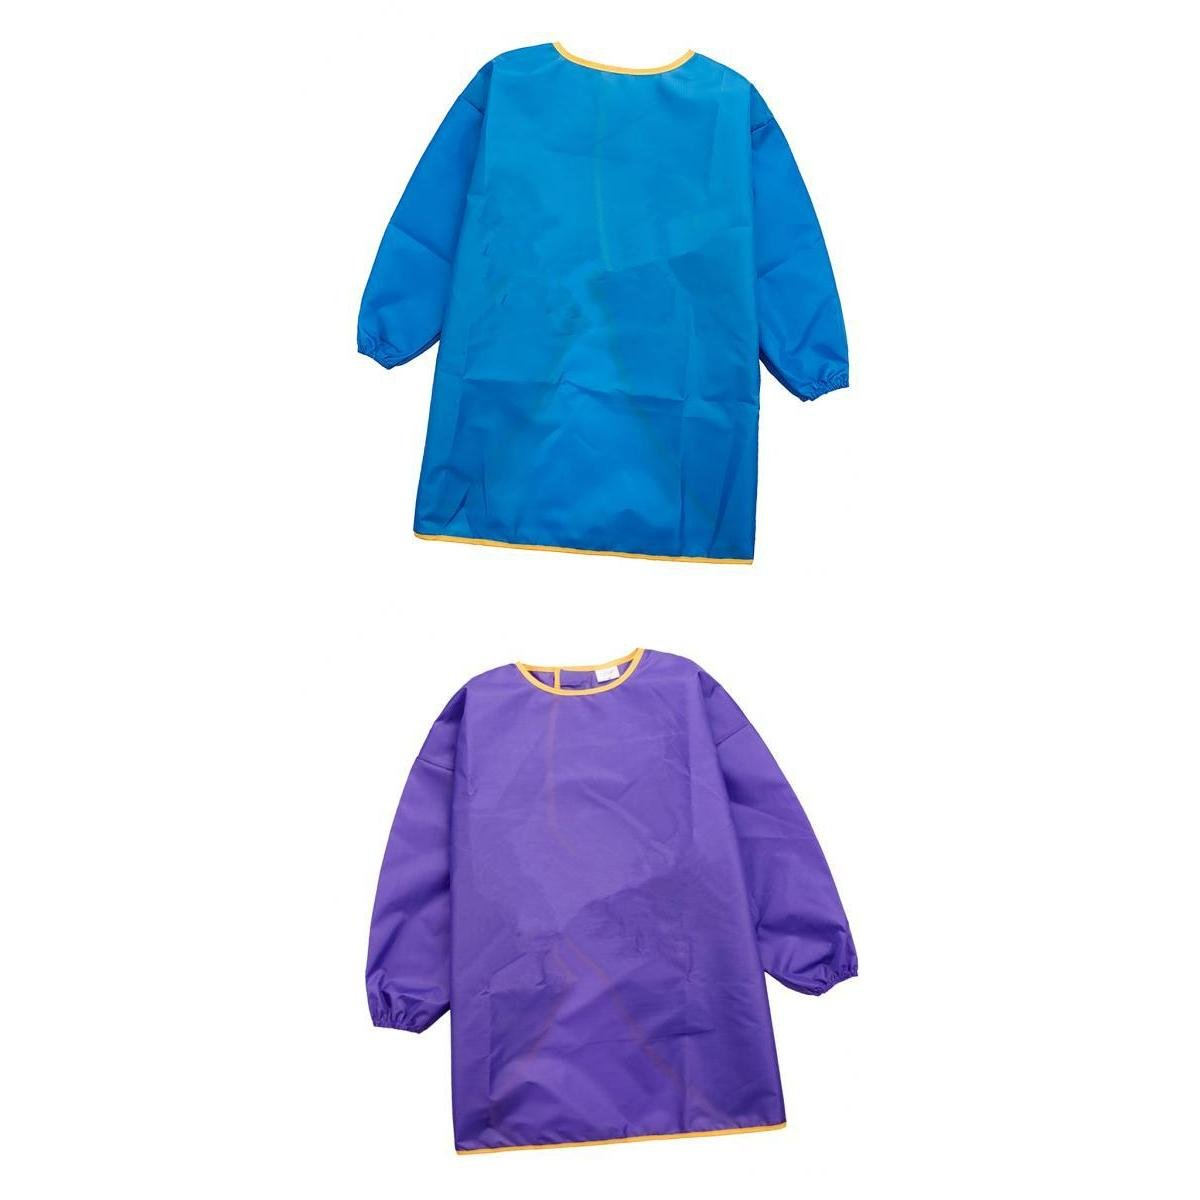 MagiDeal 2Pieces Children Kids Long Sleeve Apron Drawing Painting Waterproof Smock L